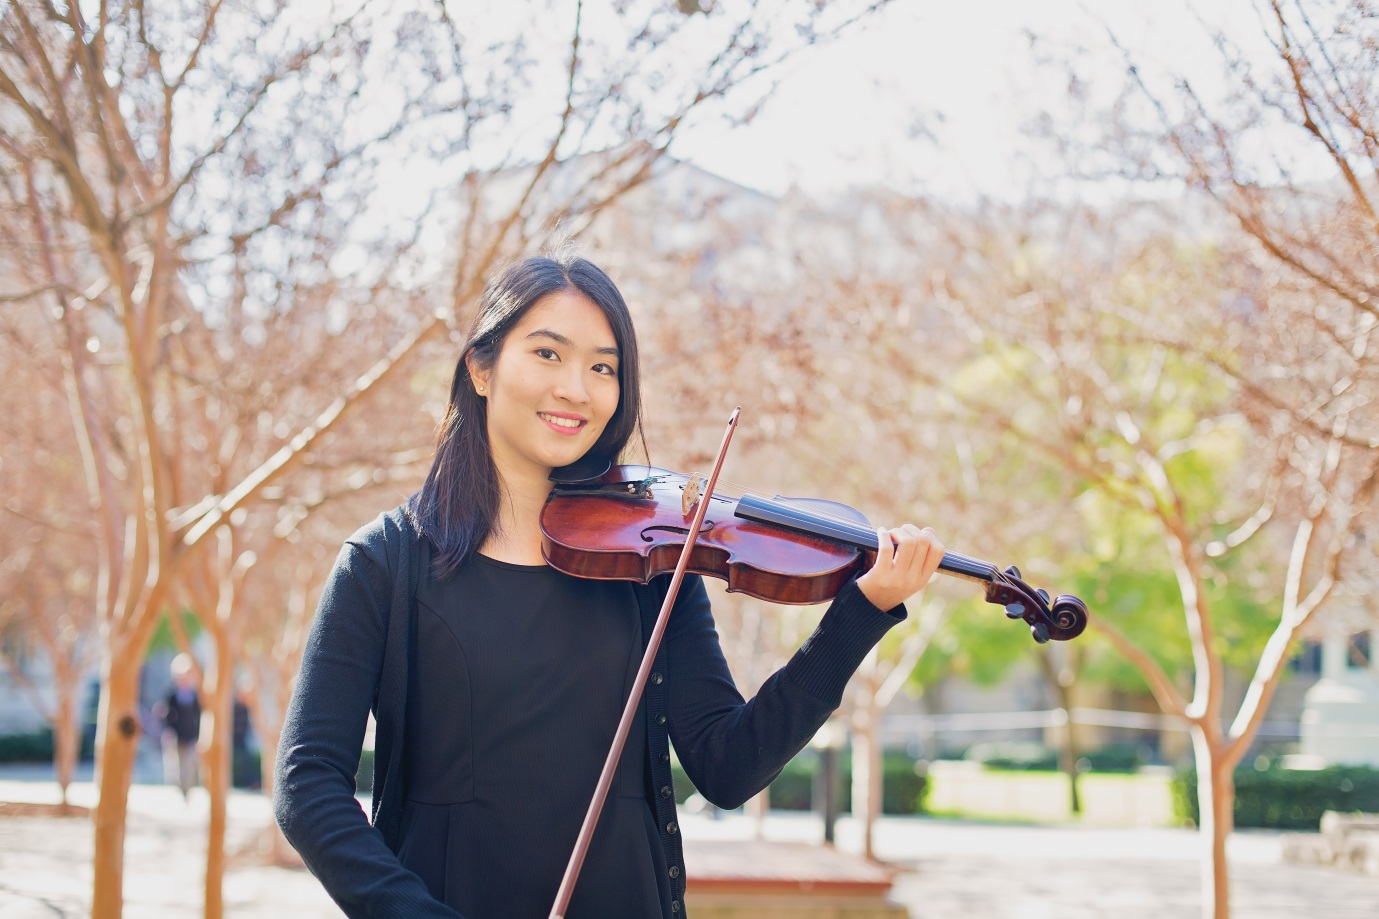 Esther Chea plays Violin